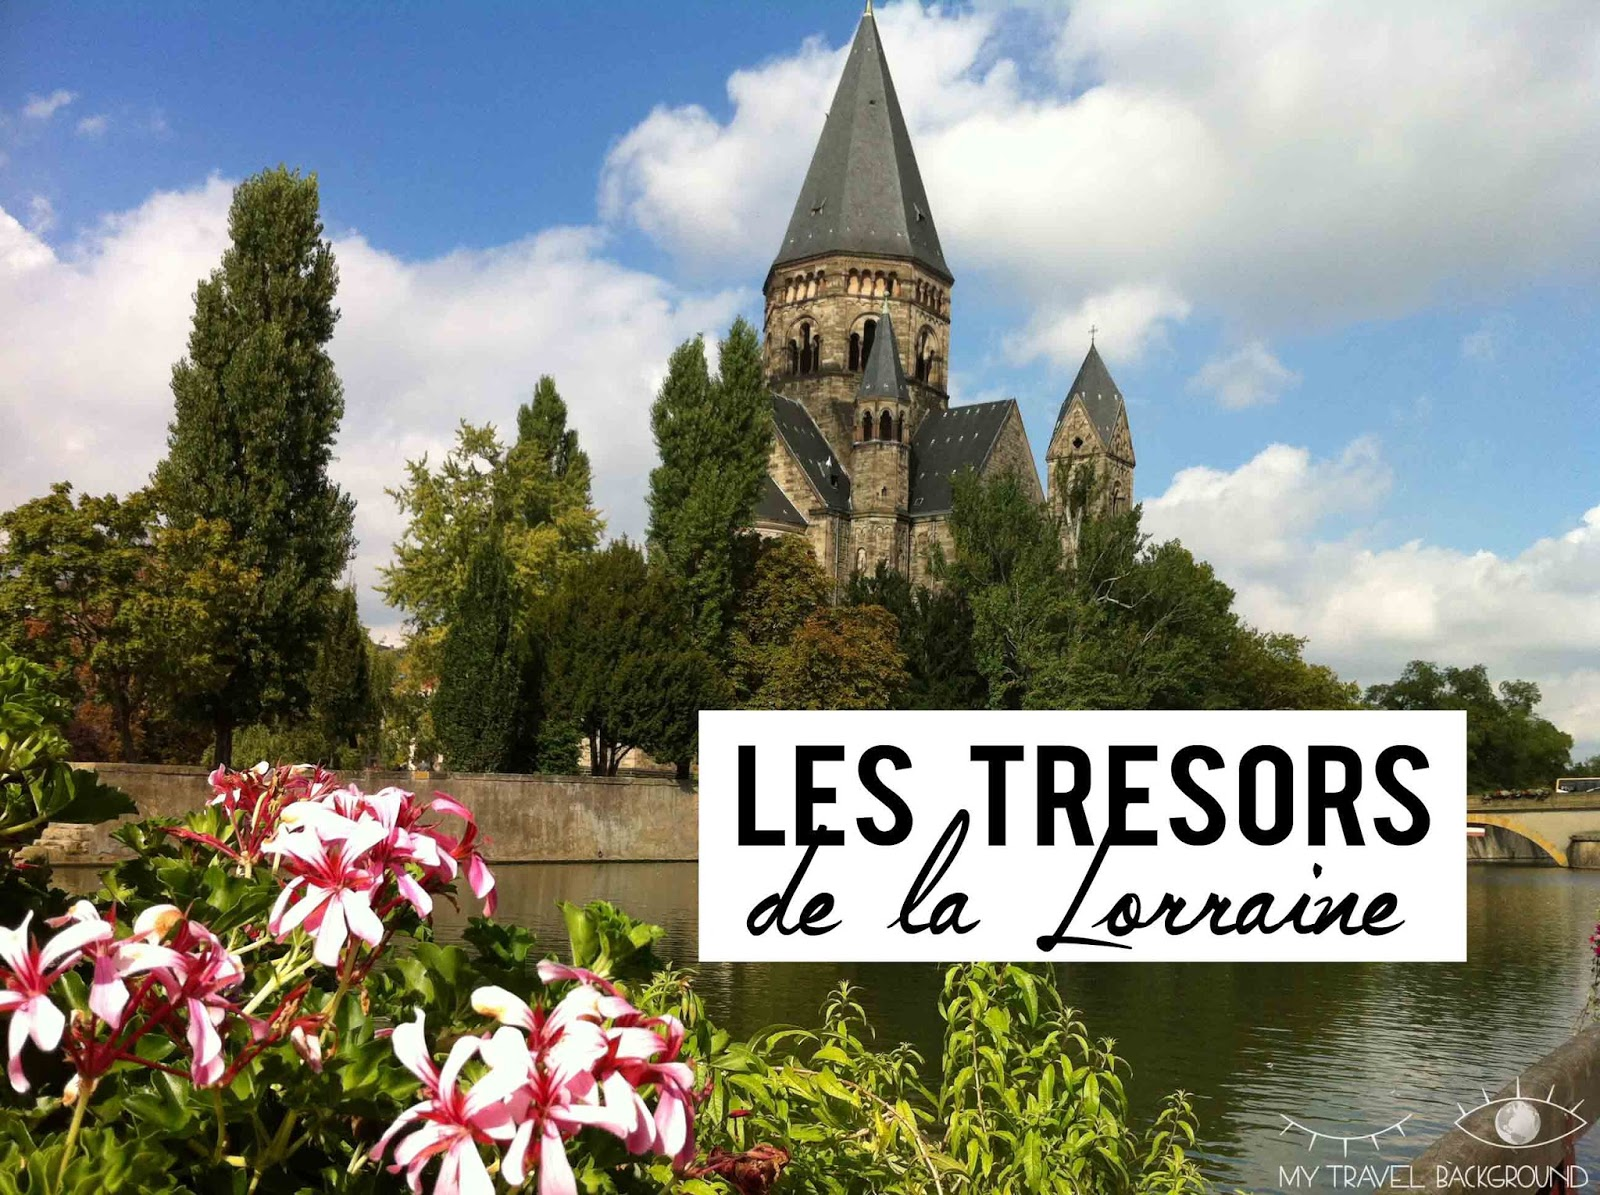 My Travel Background : top 5 de mes souvenirs 2017 ! Lorraine